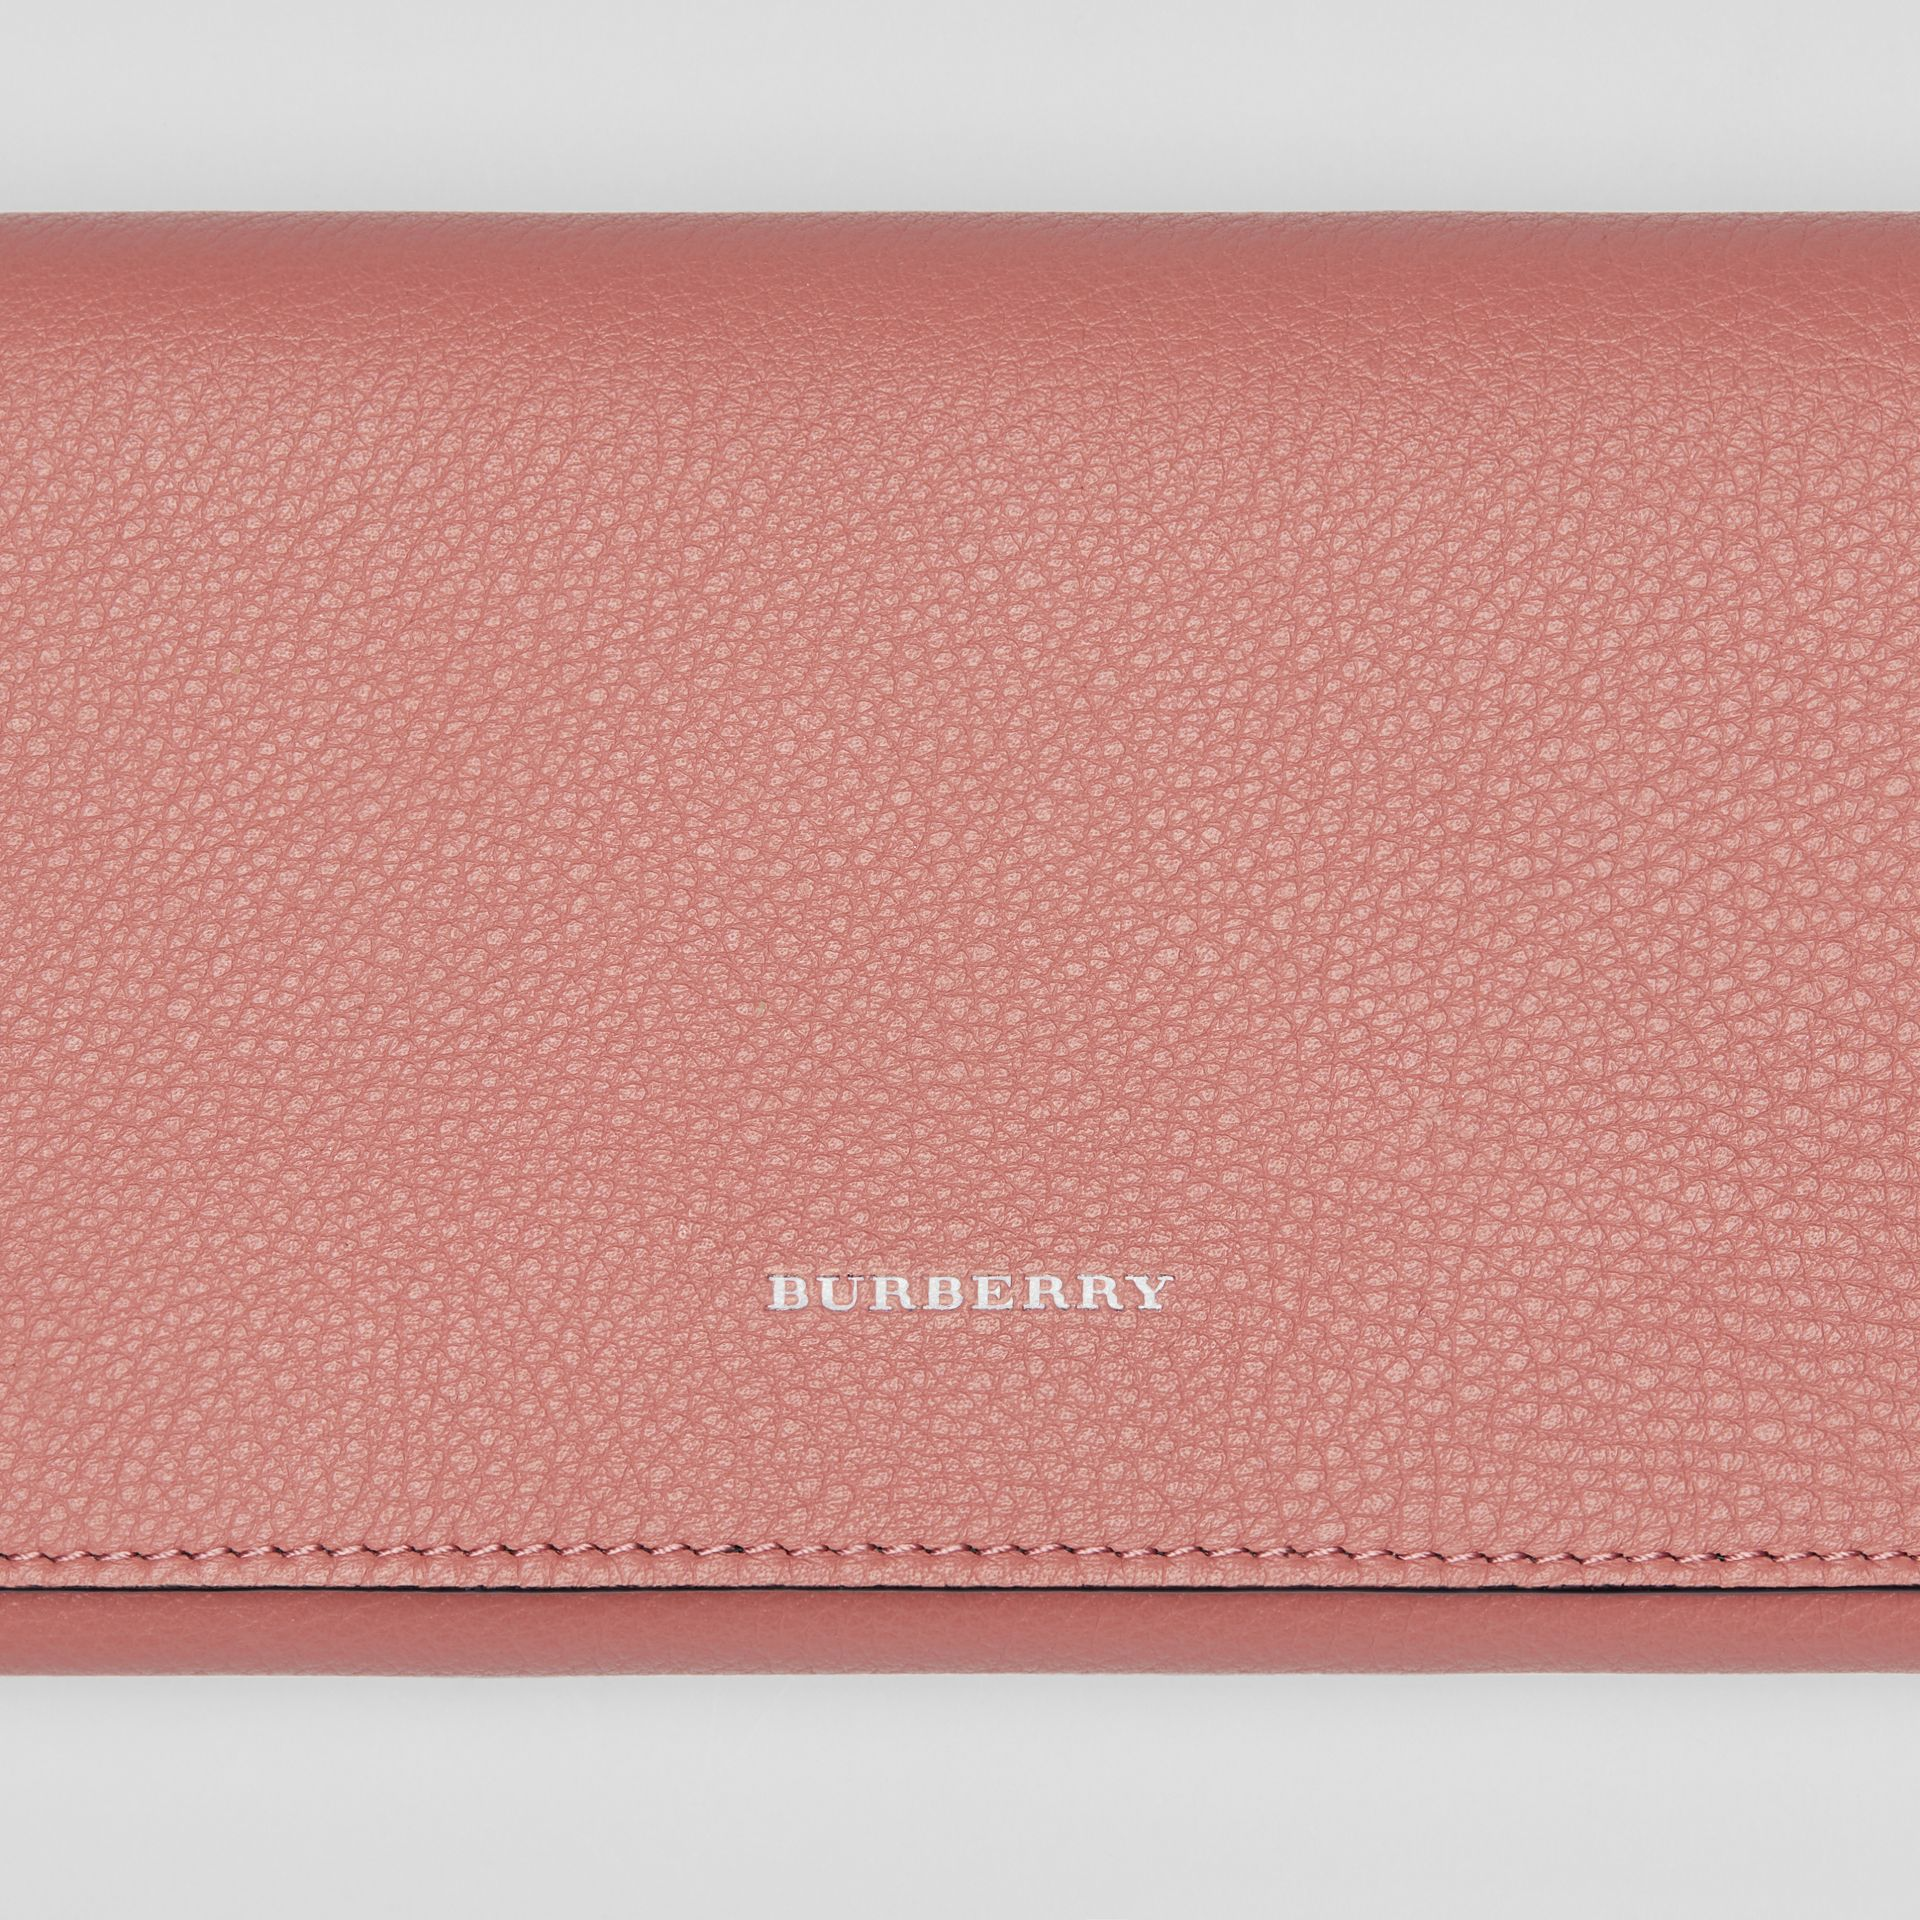 Two-tone Leather Continental Wallet in Dusty Rose - Women | Burberry United Kingdom - gallery image 1